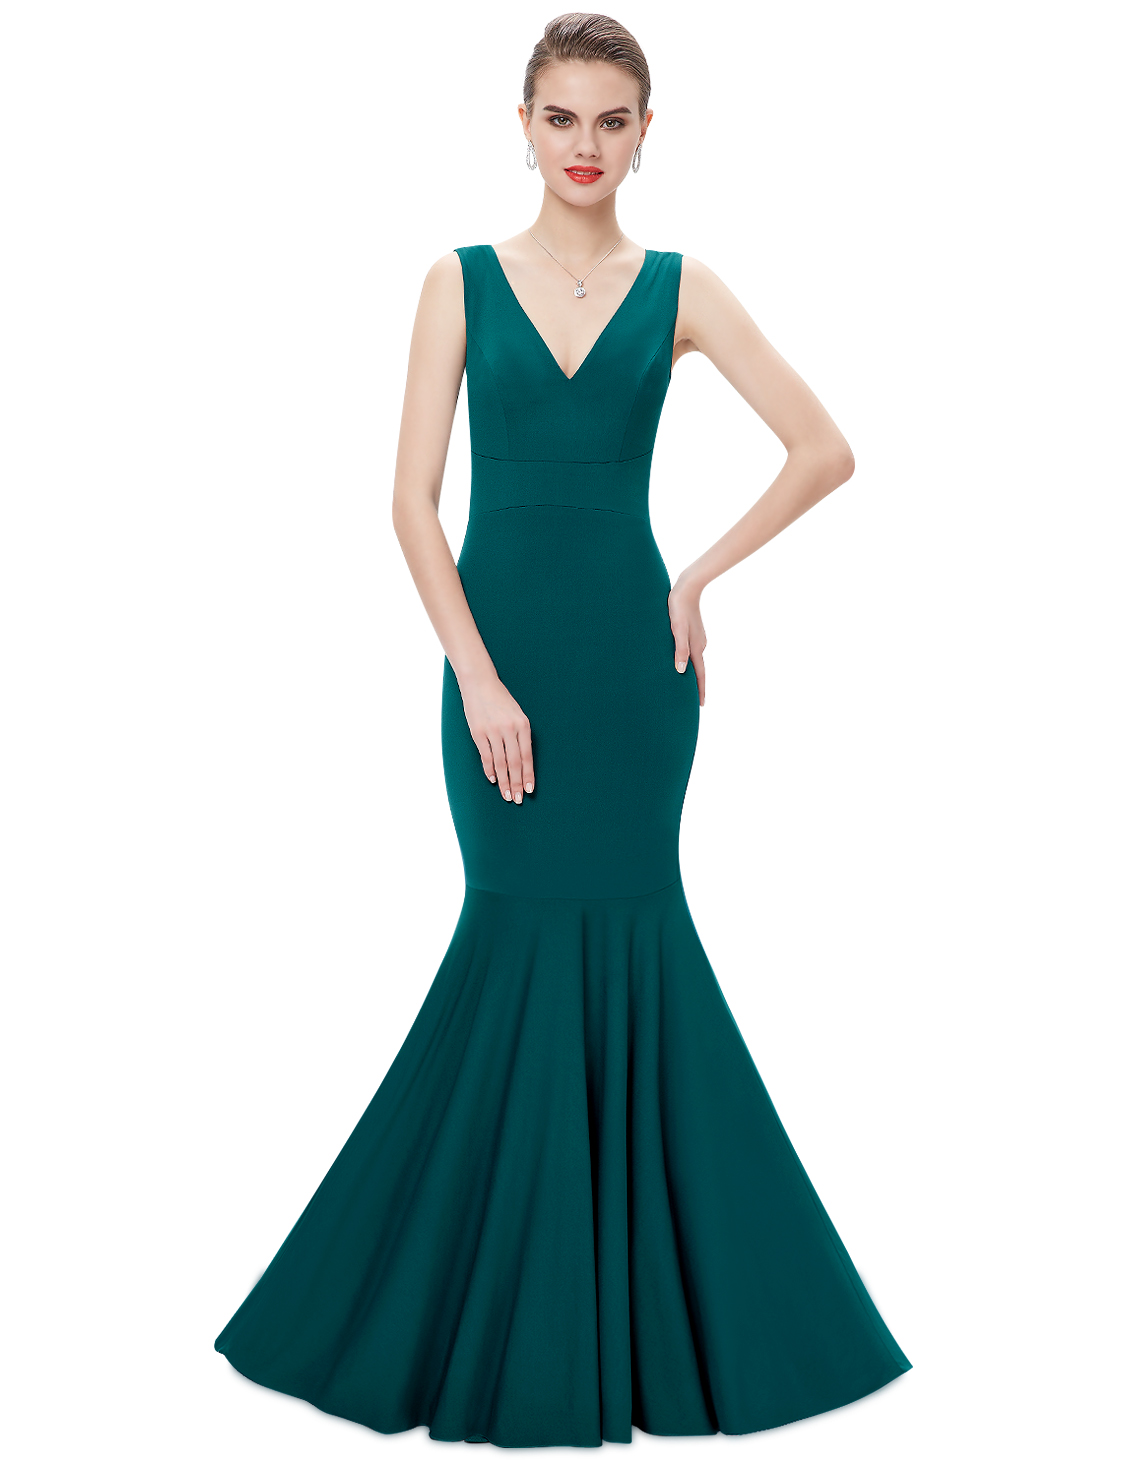 Women\'s Long Mermaid V-neck Formal Evening Party Dresses Prom 08290 ...